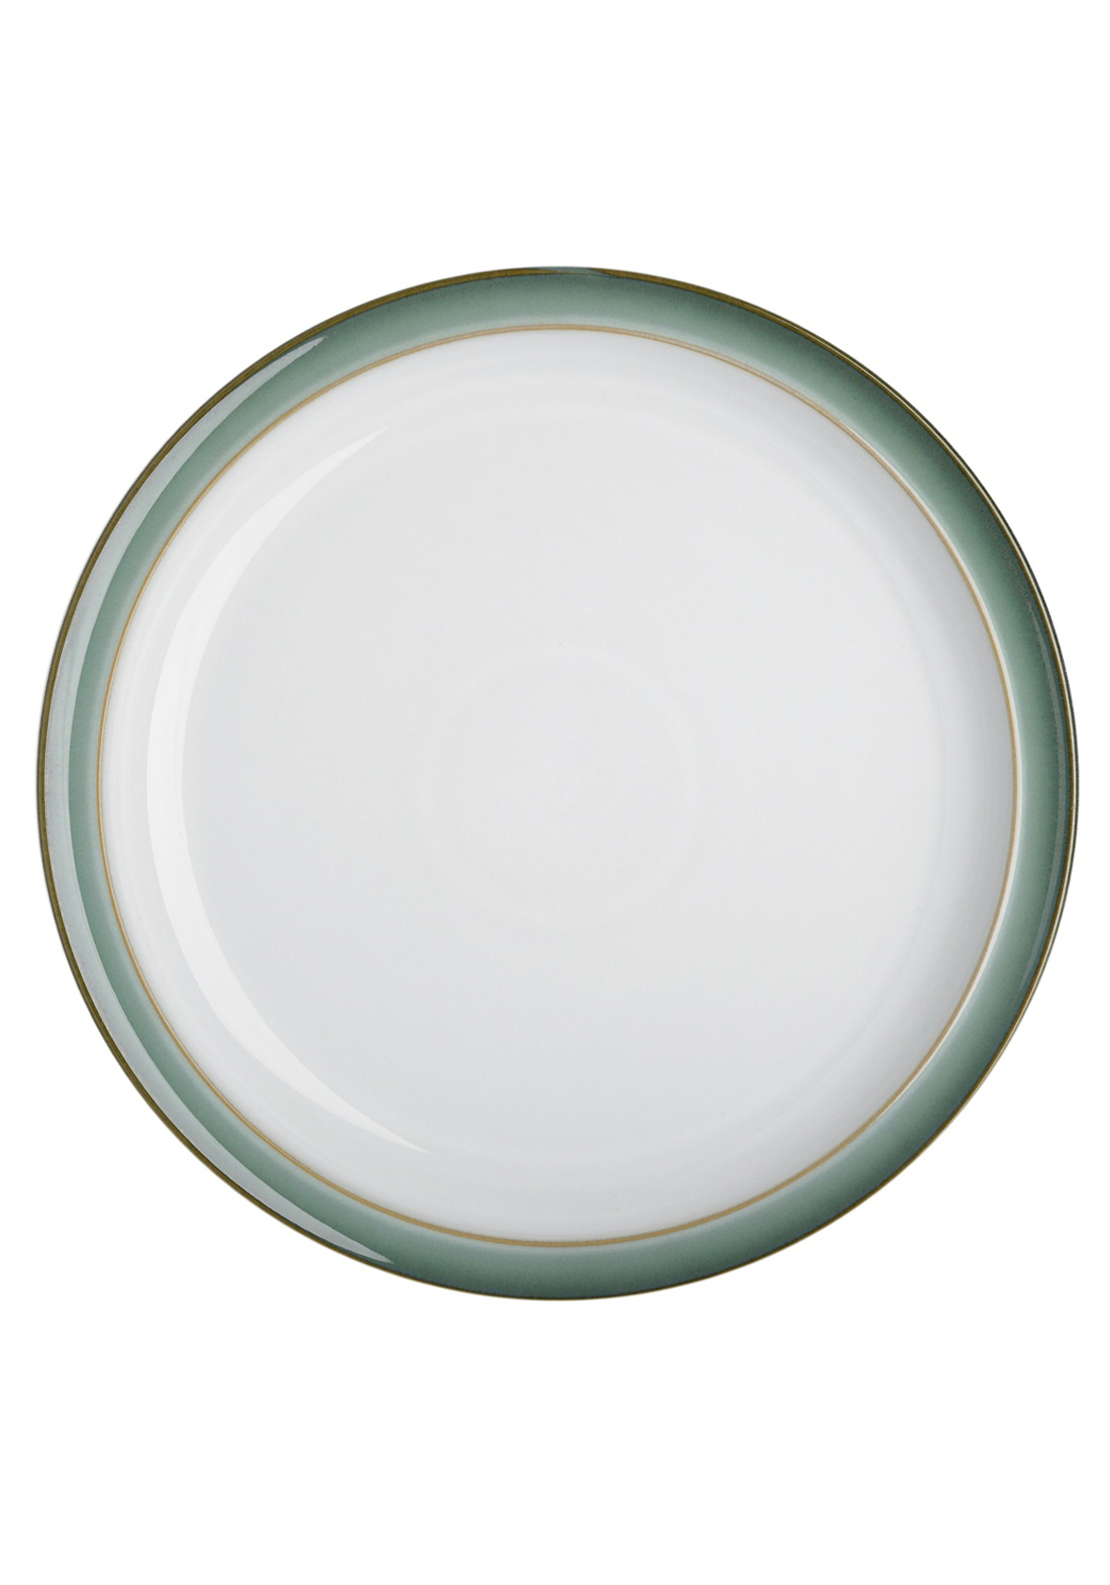 Denby Regency Green Dinner Plate, Green